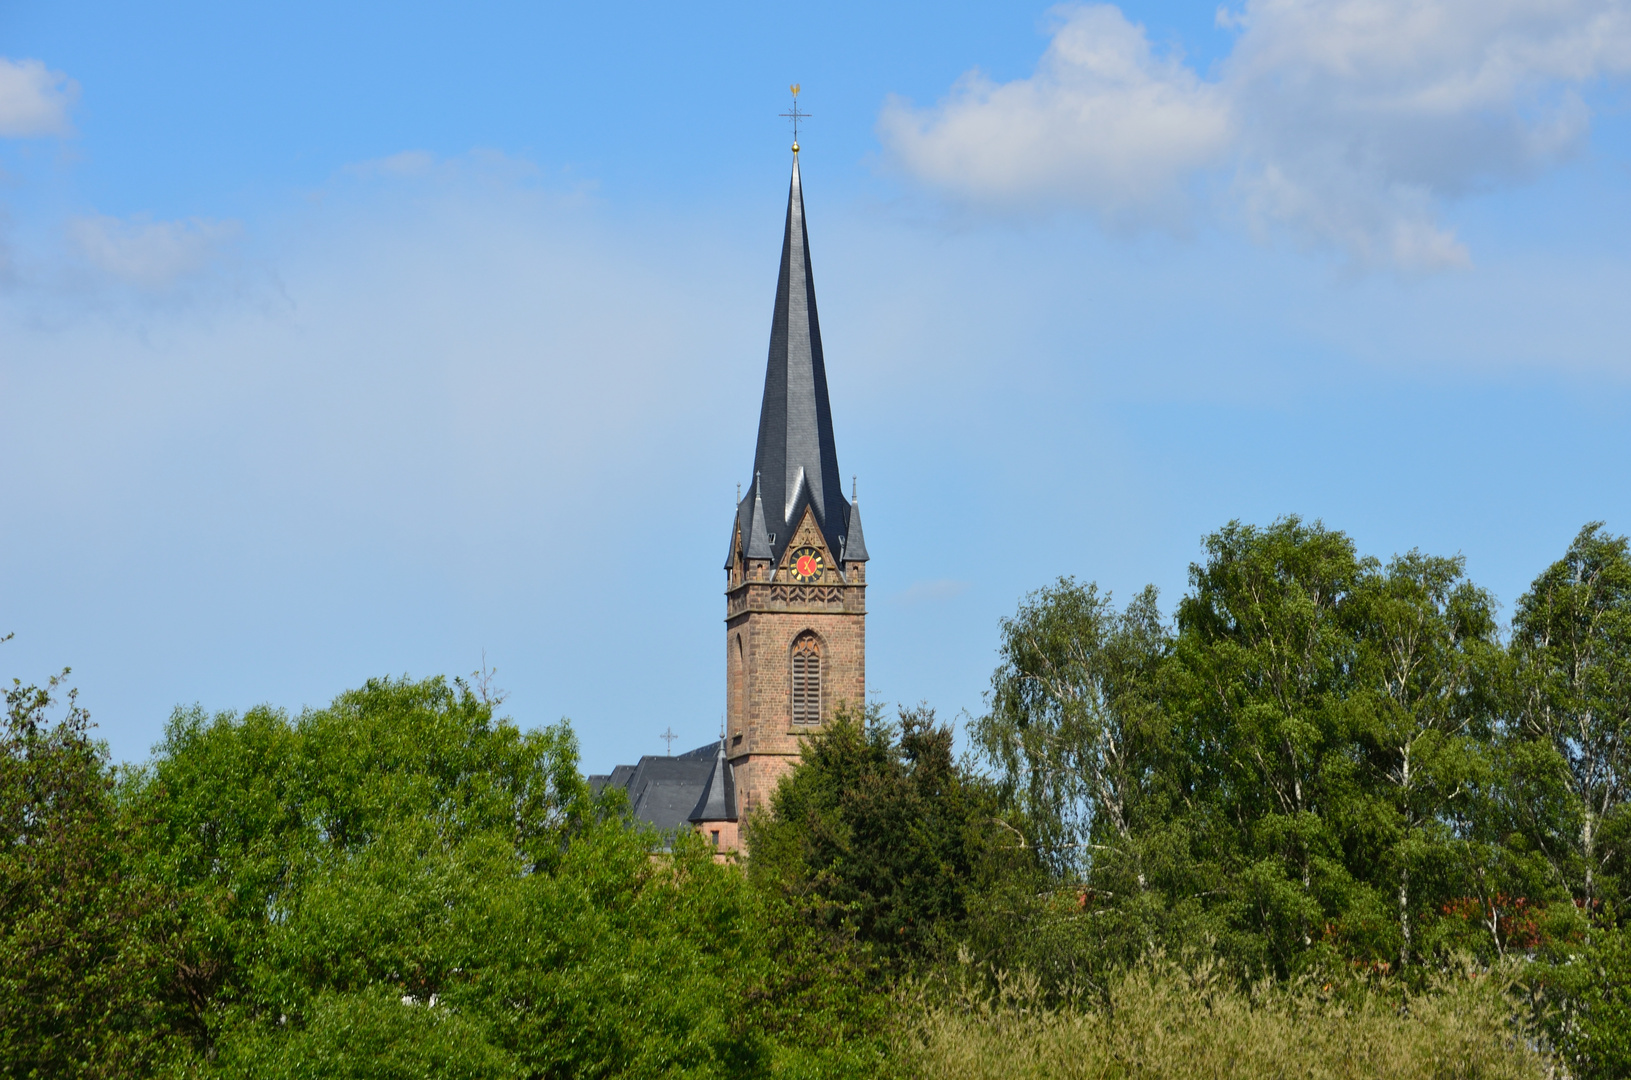 St. Andreas in Erbach